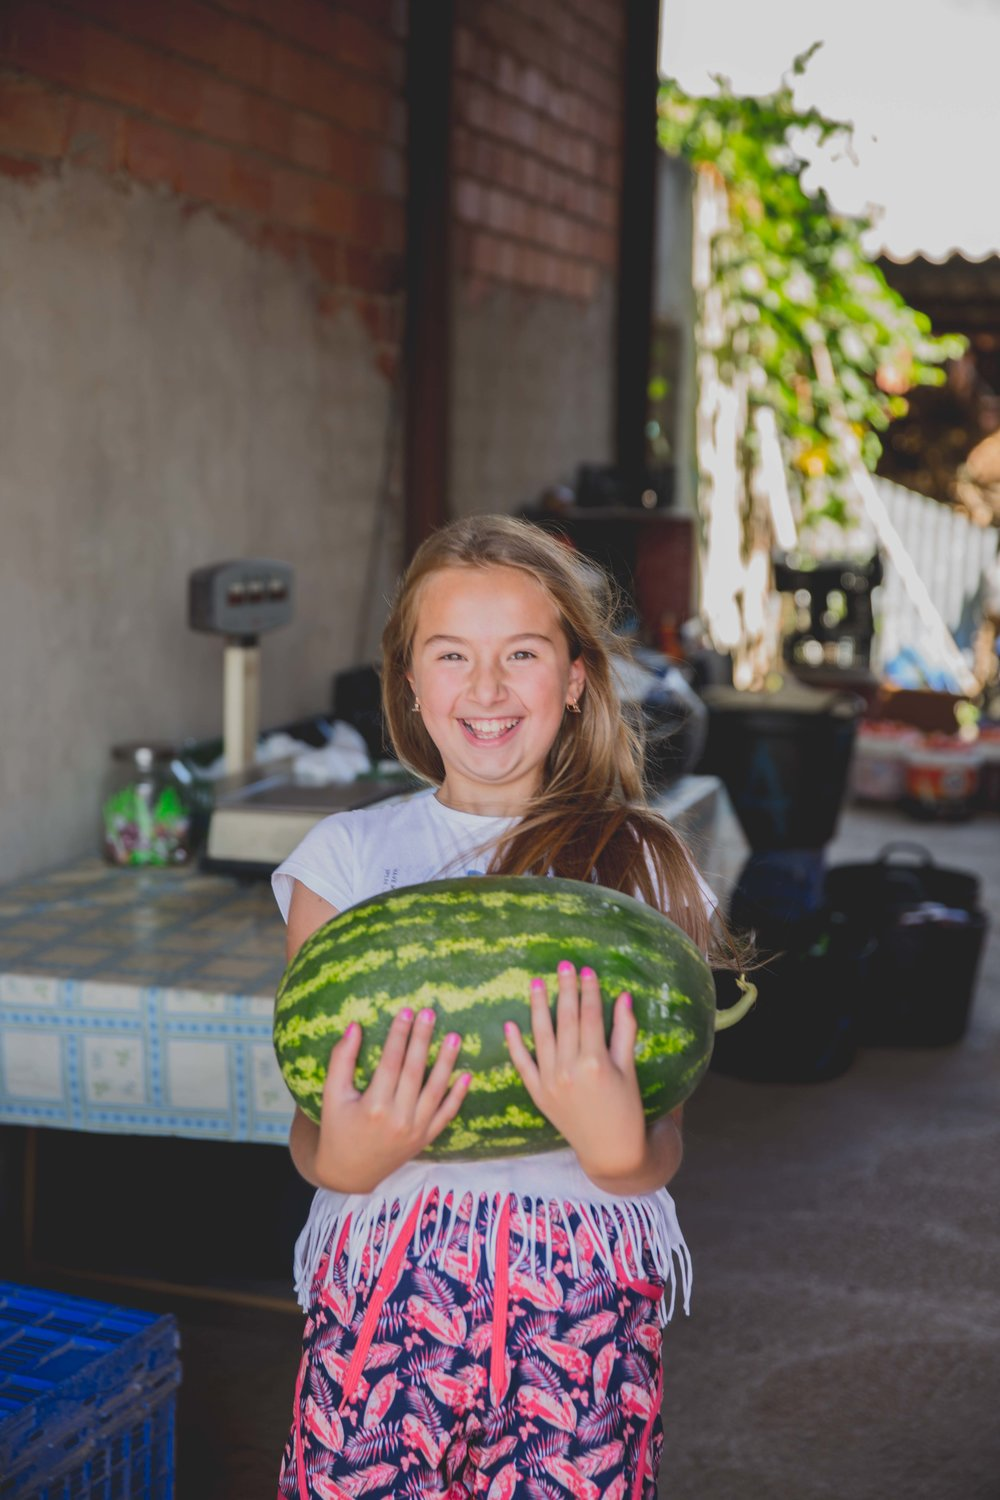 Spain-Valencia-holidays-travelling-travel-beach-sun-summer-family-natalia-smith-photography-watermelon-3.jpg